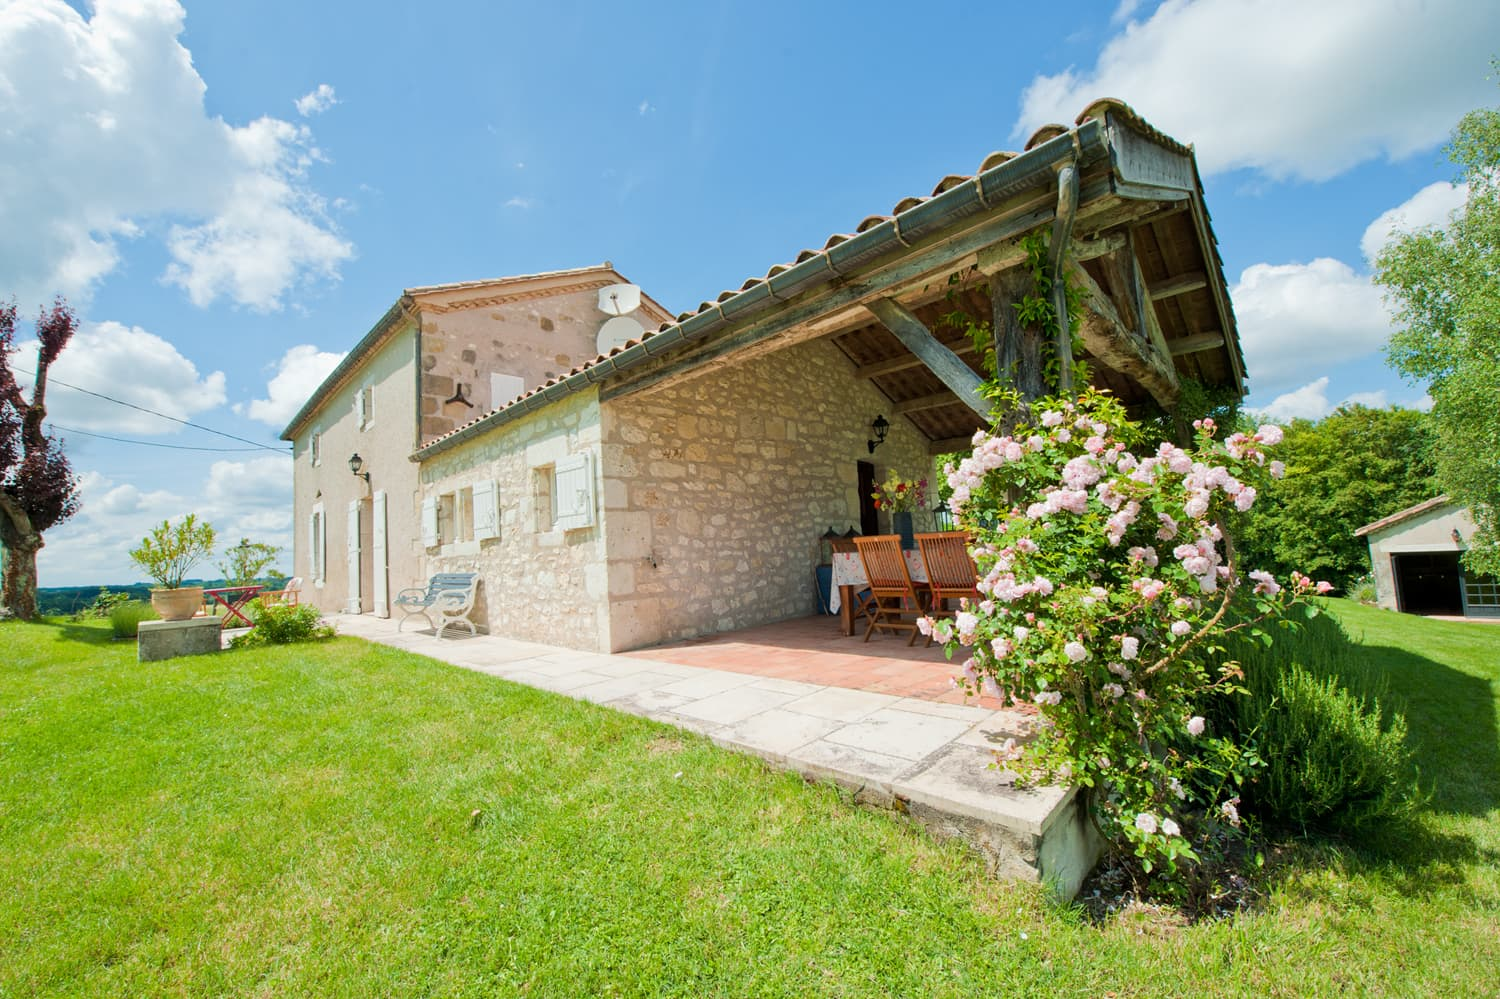 Rental accommodation in Lot-et-Garonne